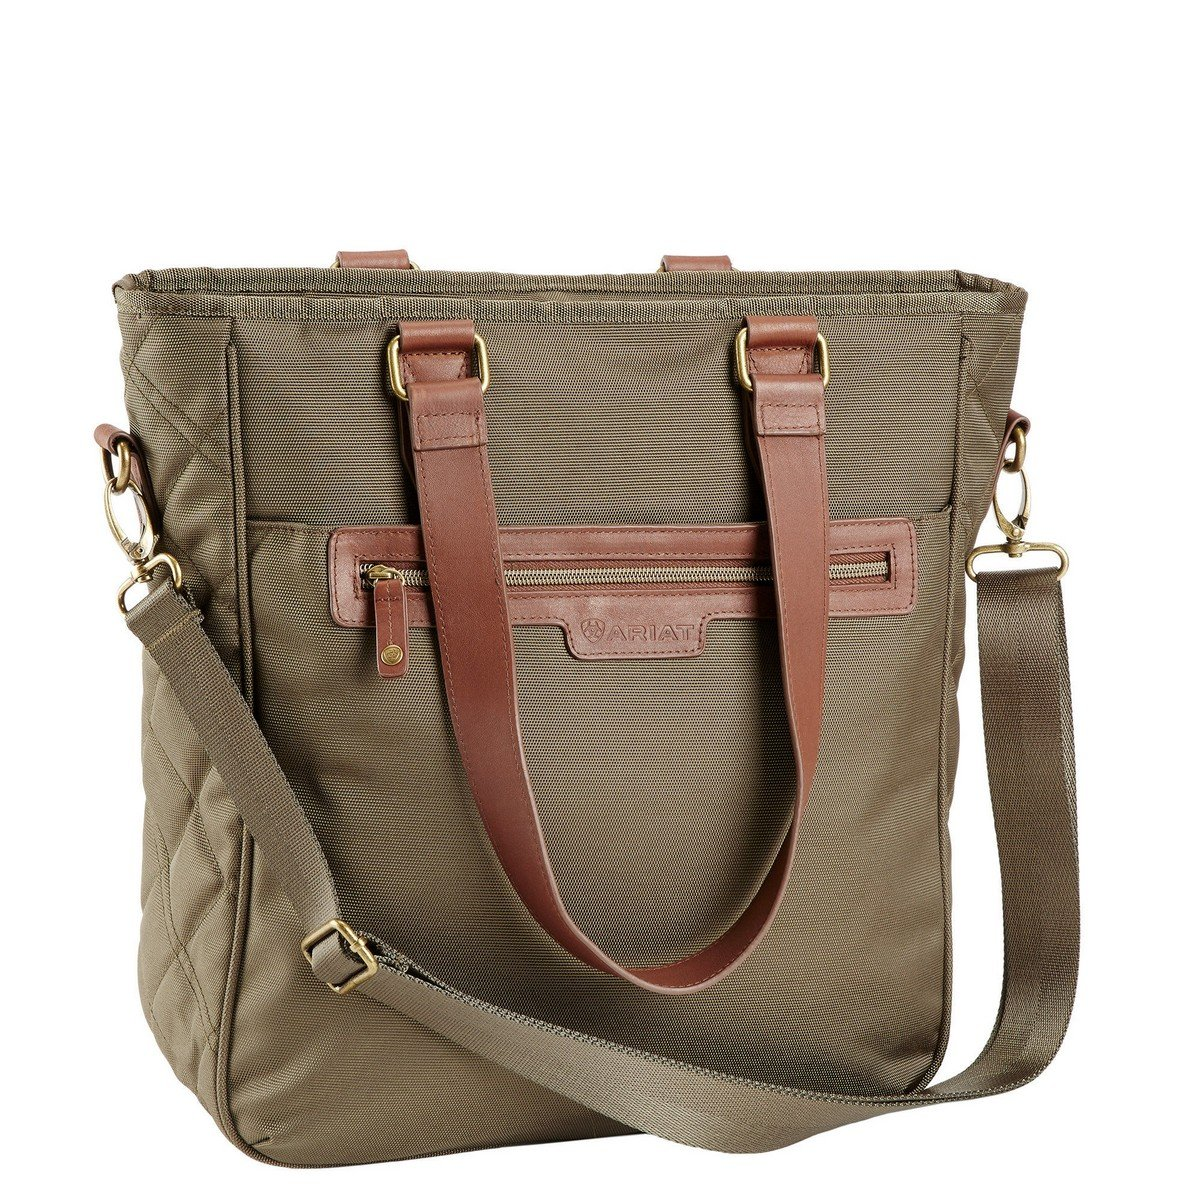 Billede af Ariat Bag Core Large Tote Green One Size